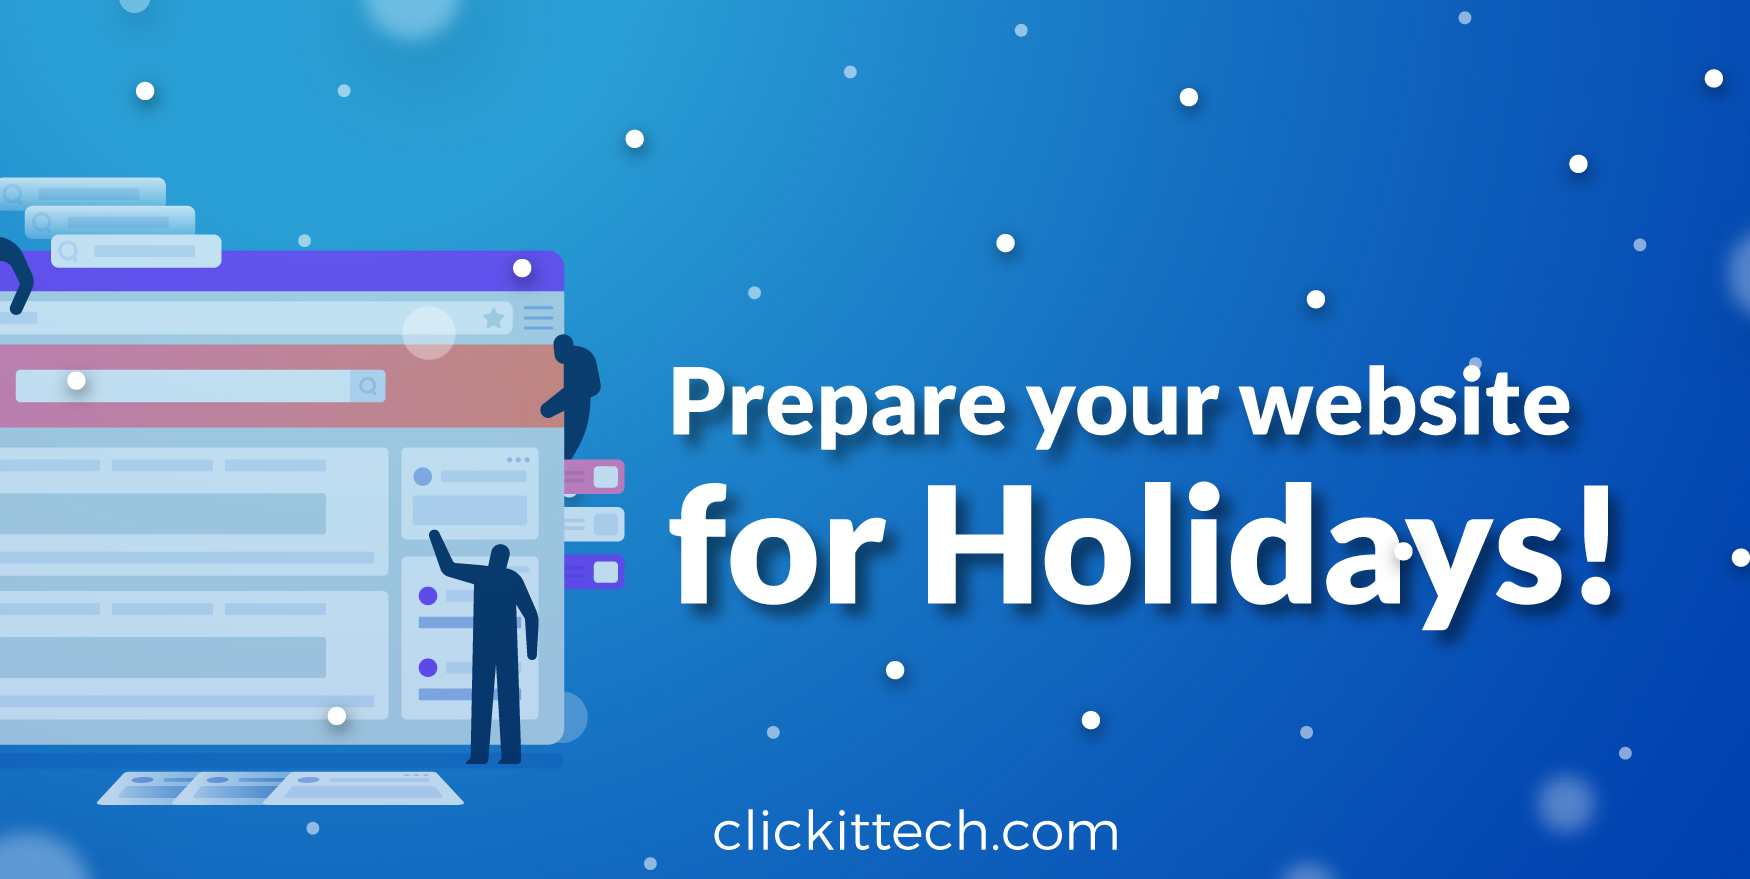 Are you ready for traffic spikes during holidays?